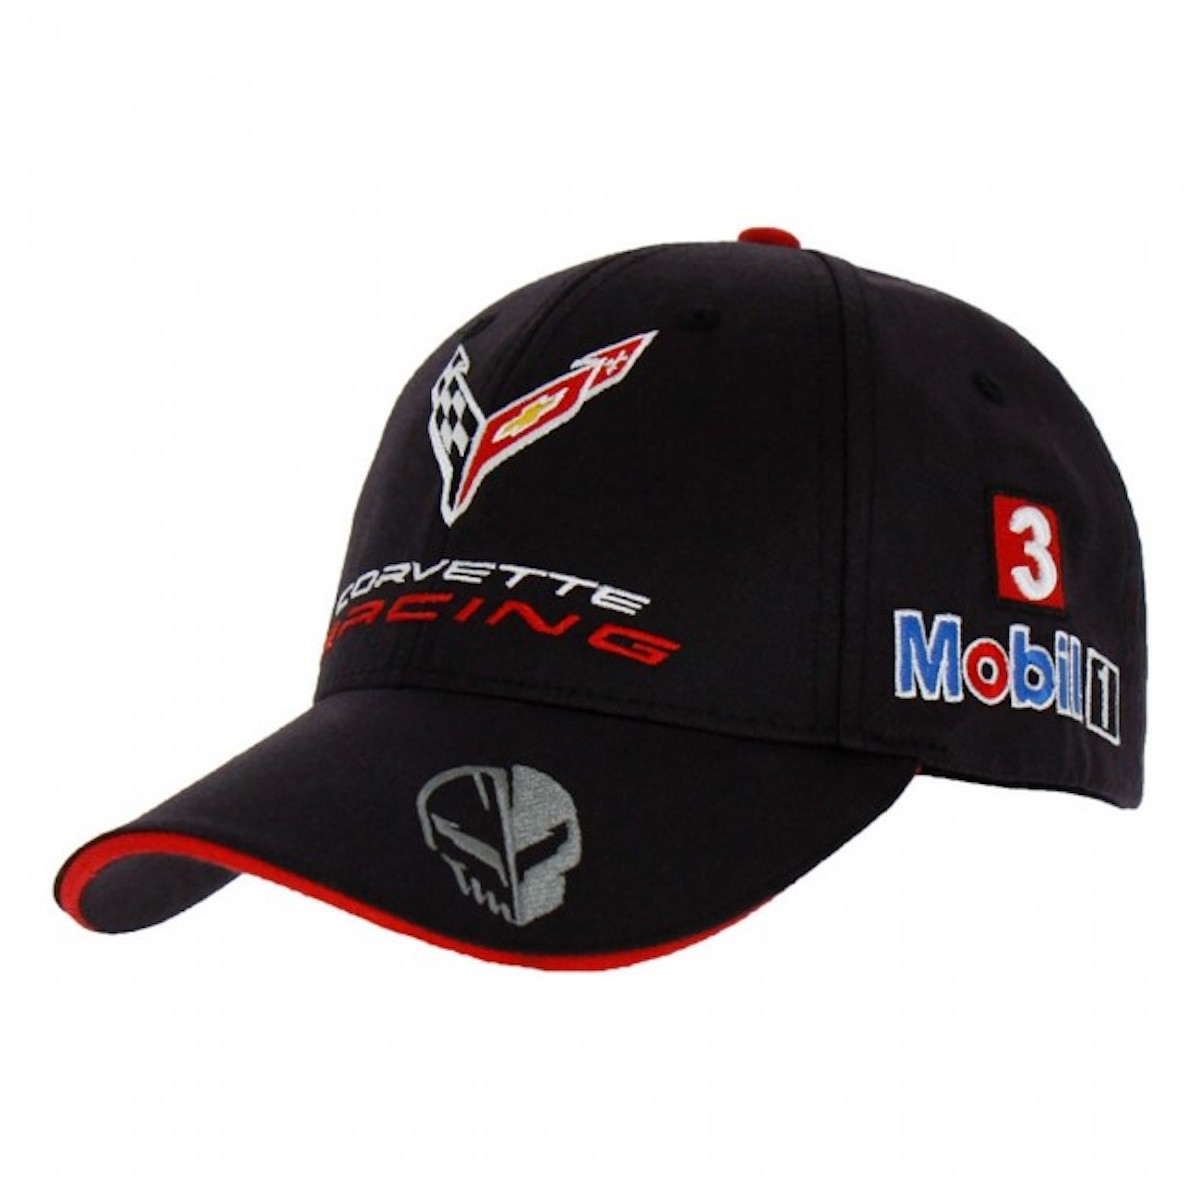 A veiw of the Corvette C8.R Official Team Cap, available at the Official Corvette Racing Store for $30.00 USD